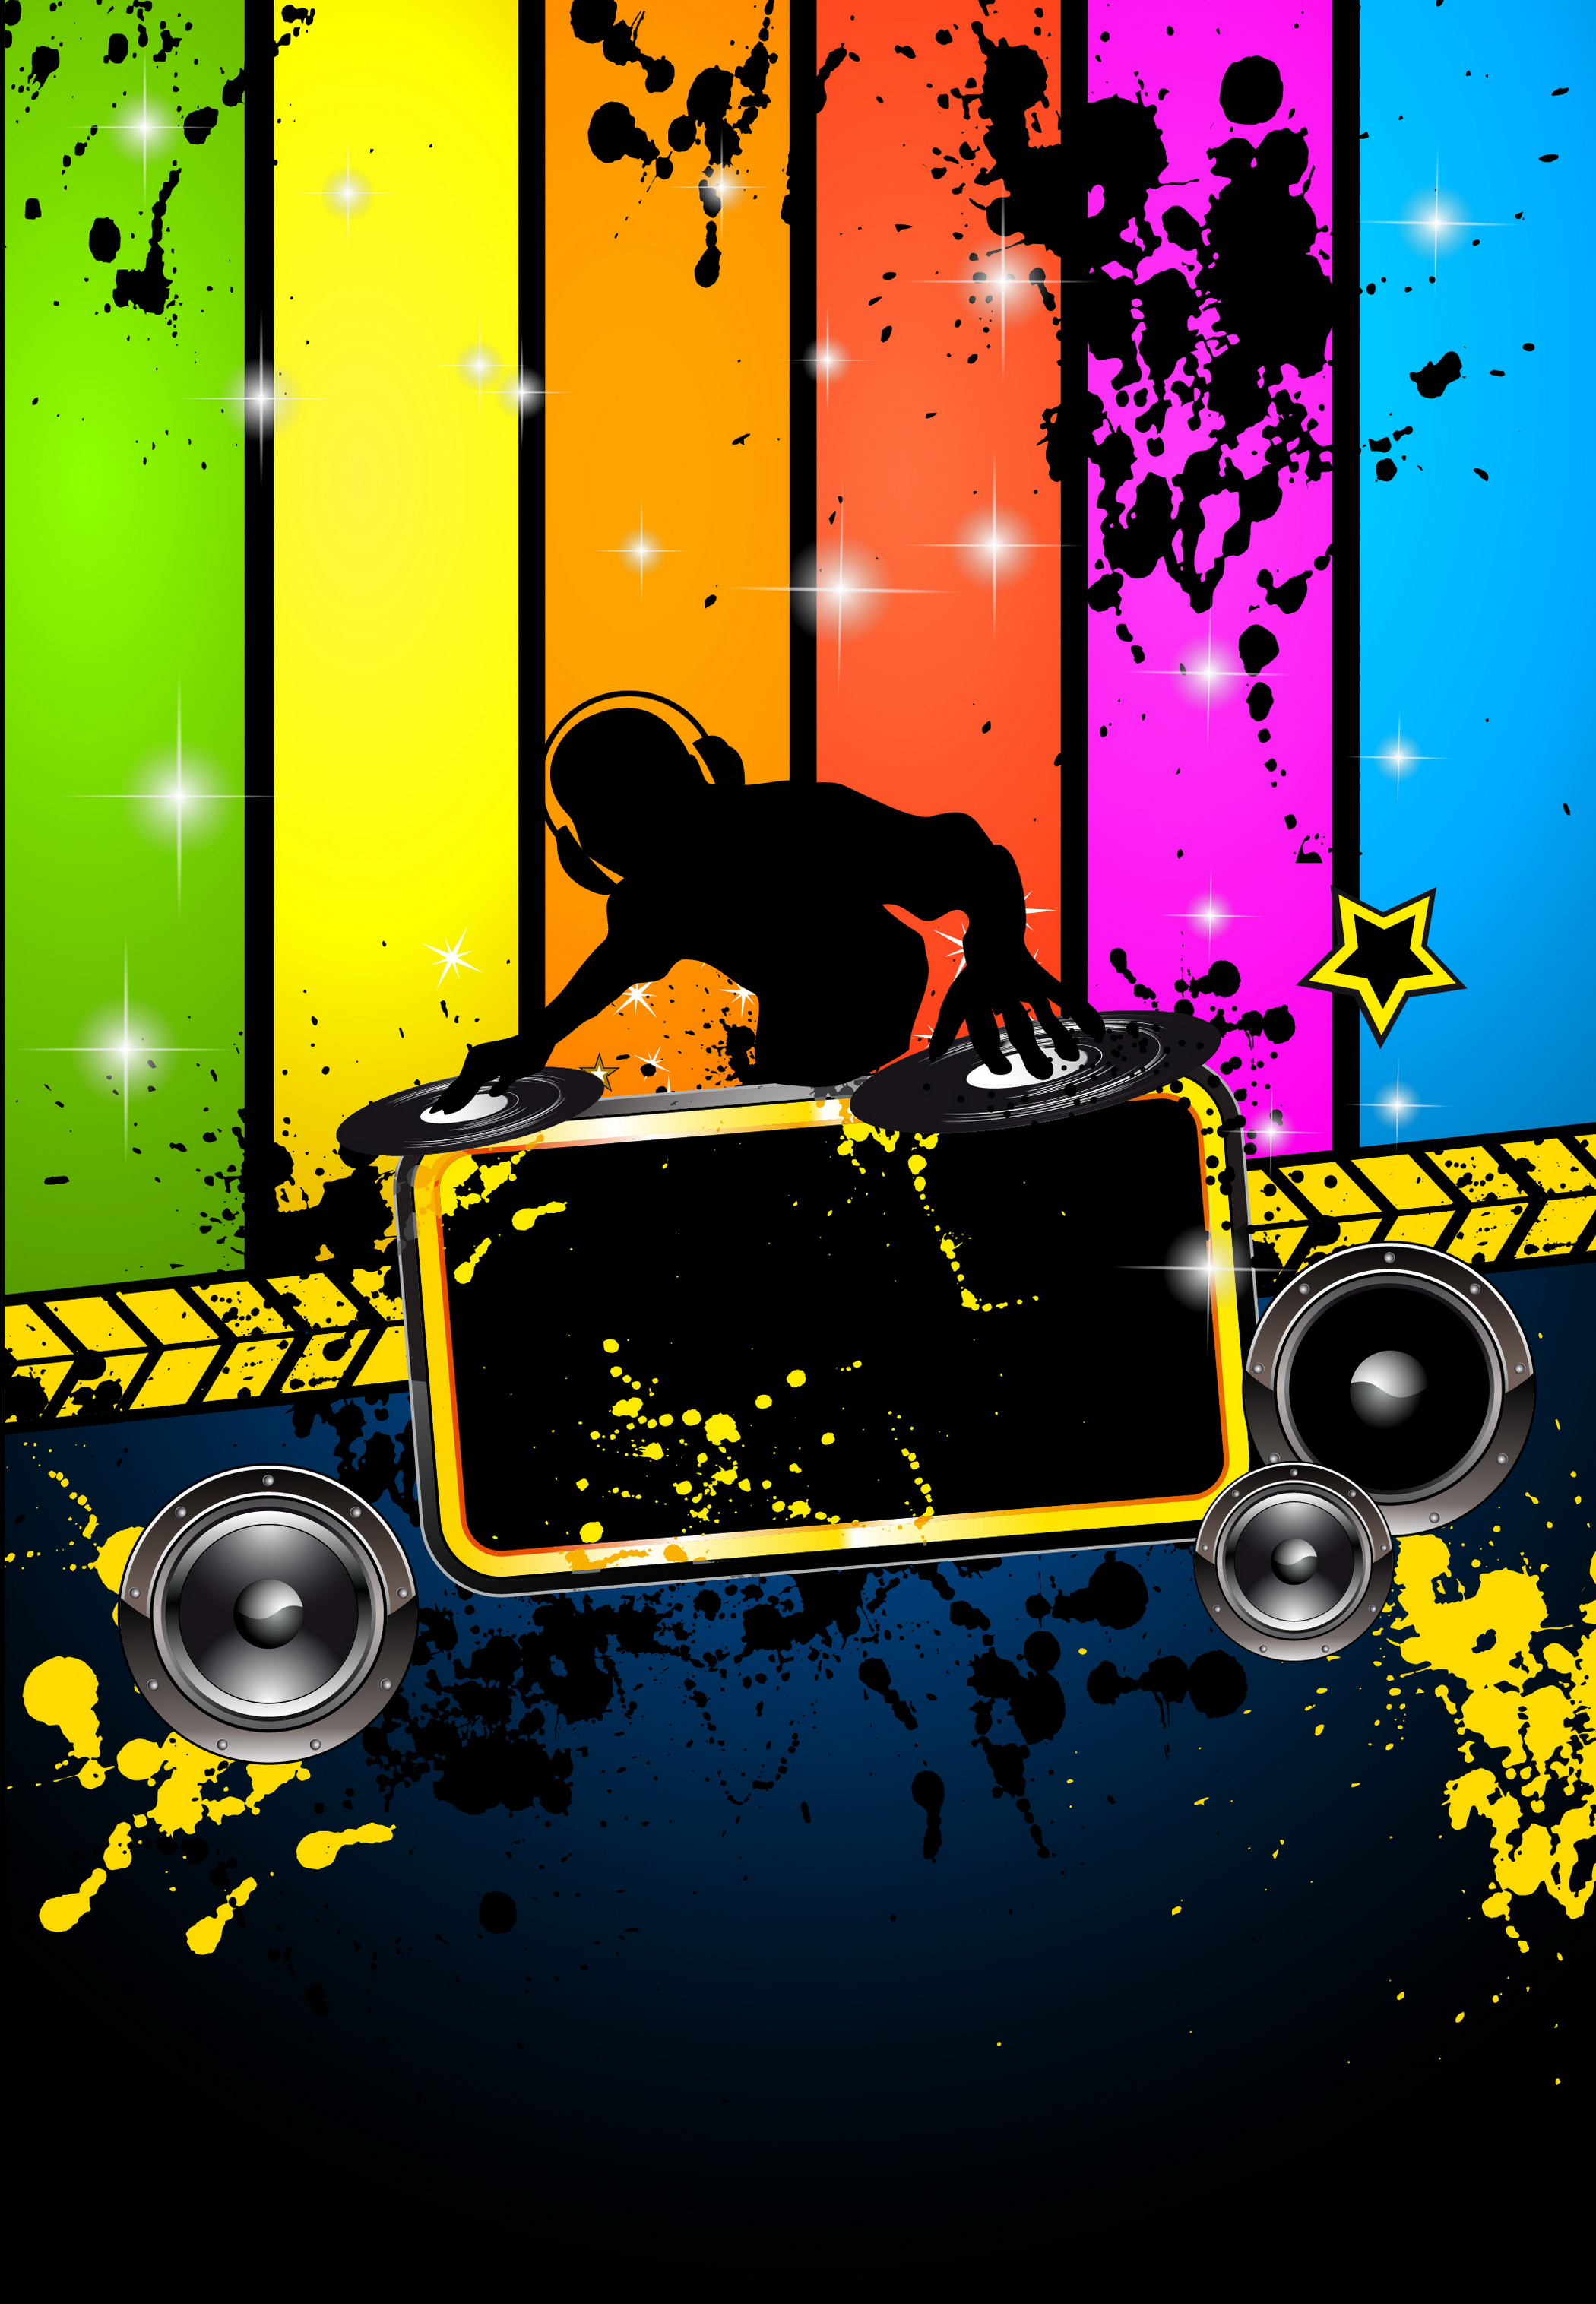 Rock Music Dj Background Image For Free Download